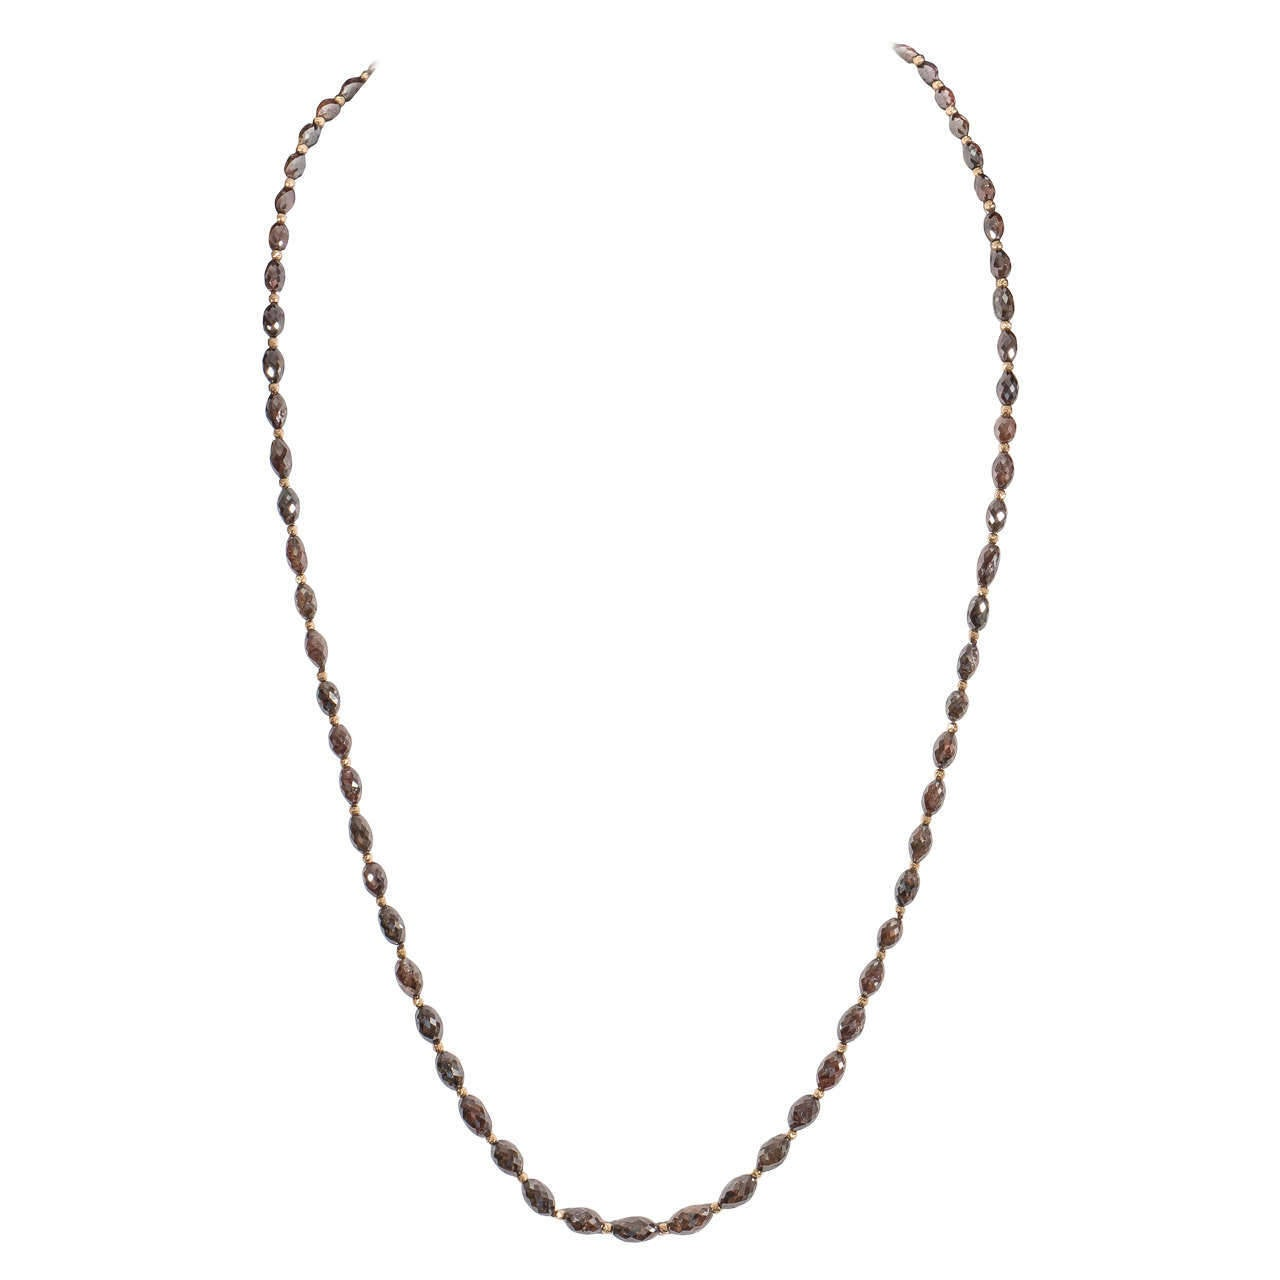 Naomi Sarna Brown Diamond Gold Bead Necklace For Sale 6